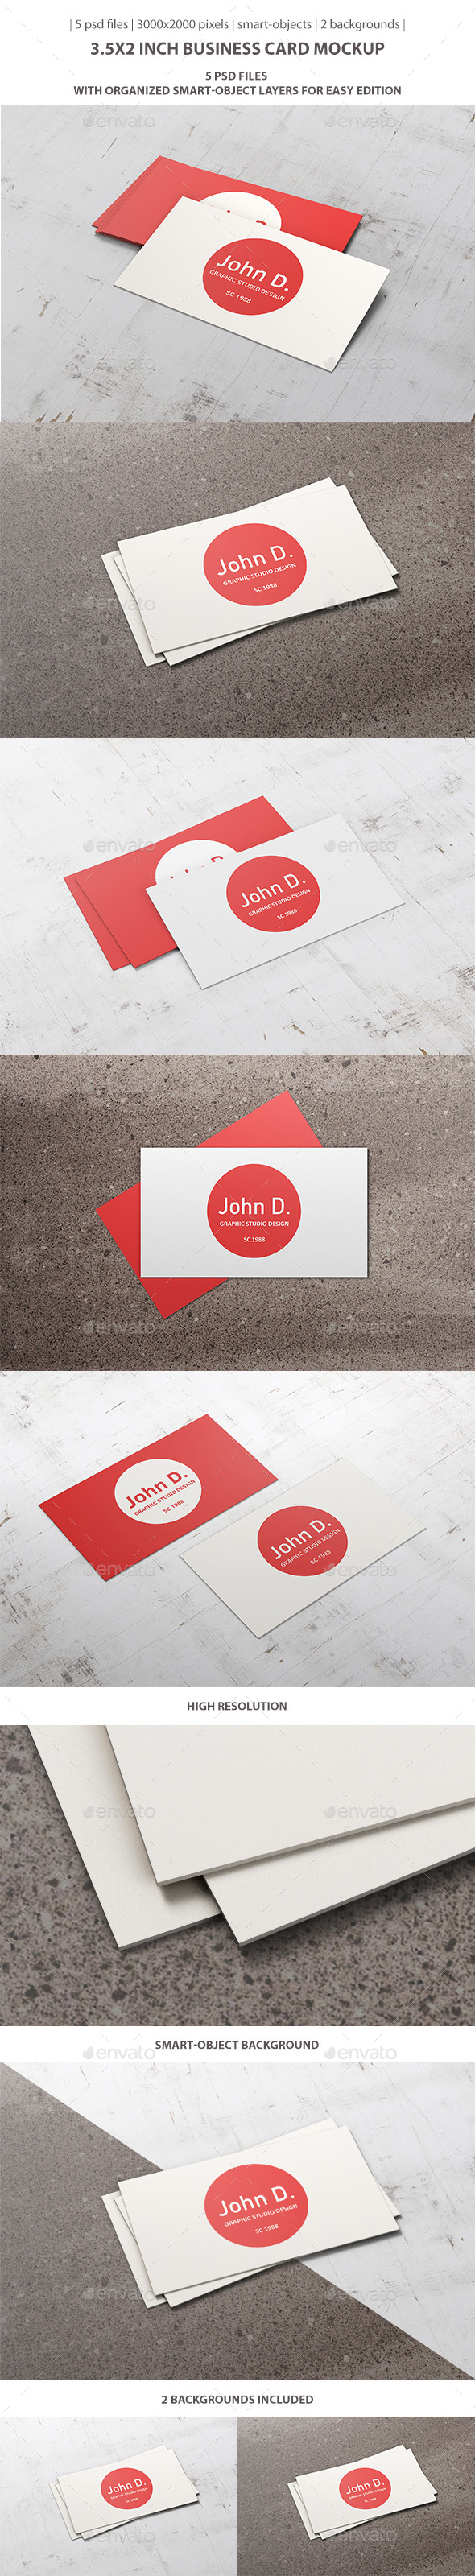 3.5x2 inch Business Card Mockup - Business Cards Print